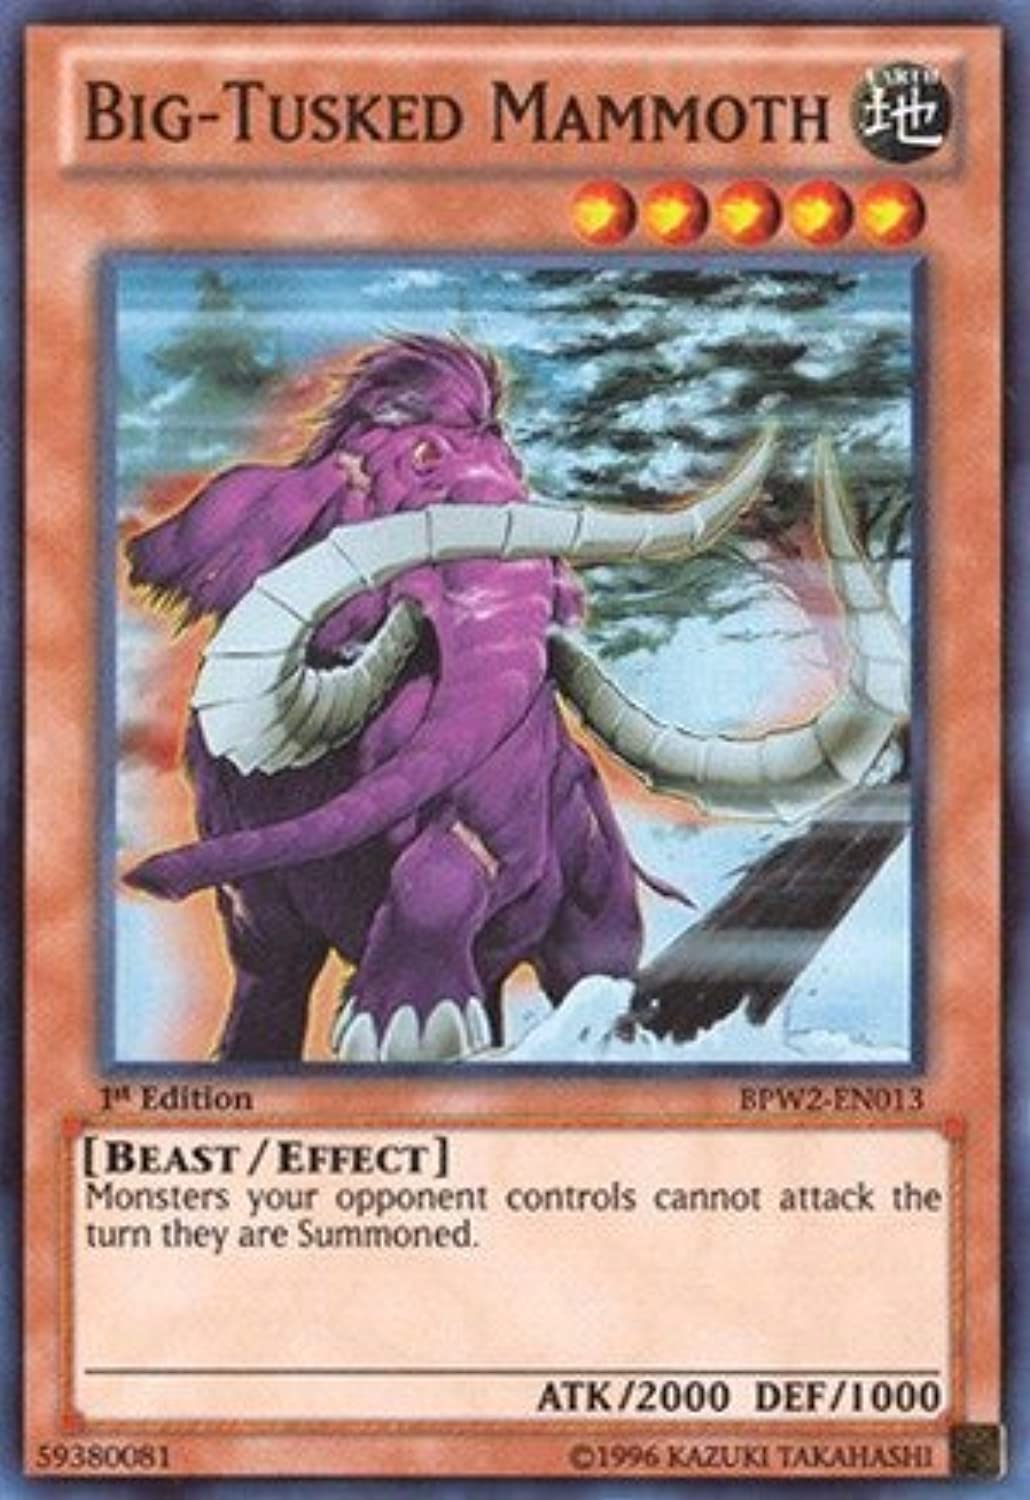 YuGiOh   BigTusked Mammoth (BPW2EN013)  Battle Pack 2  War of the Giants  Round 2  1st Edition  Super Rare by YuGiOh